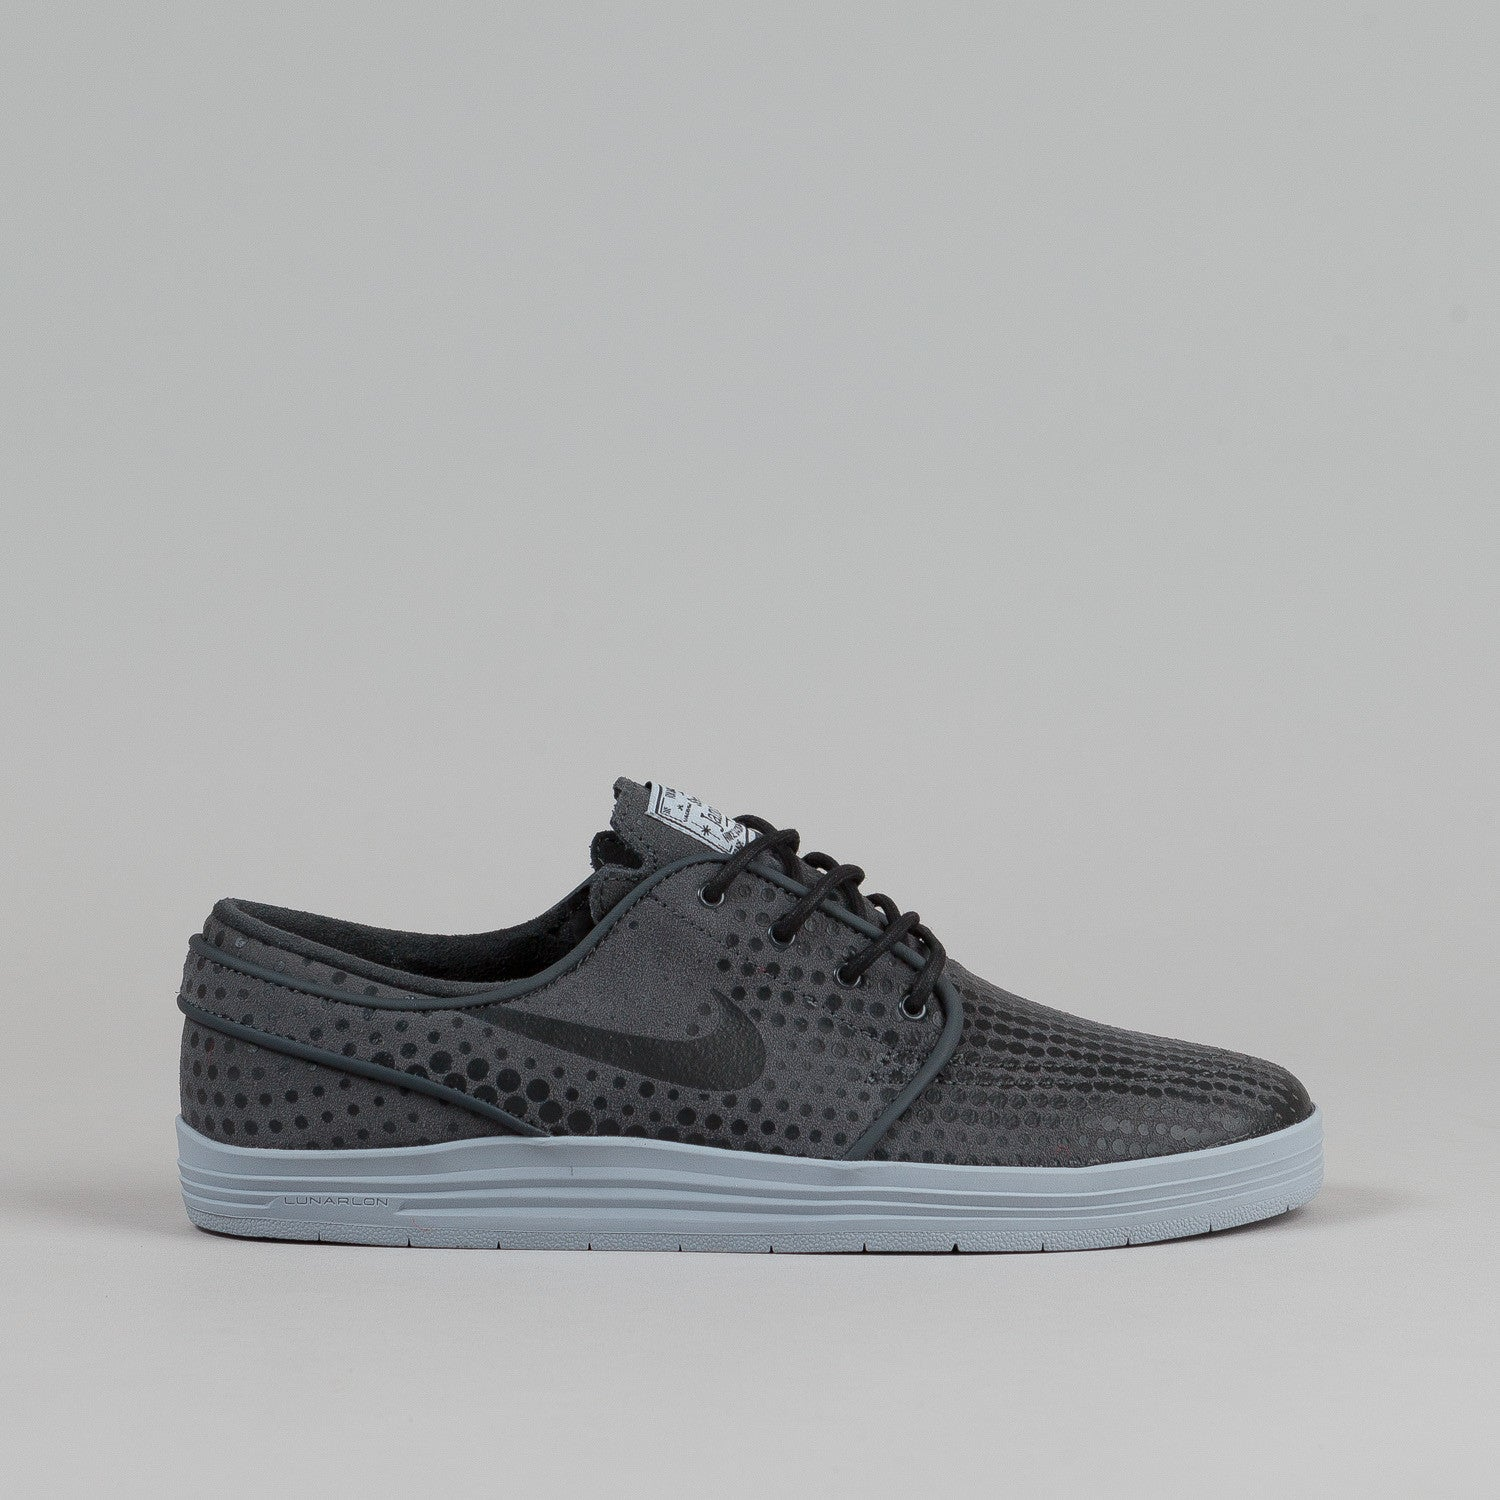 Nike SB Lunar Stefan Janoski Shoes Anthracite / Black